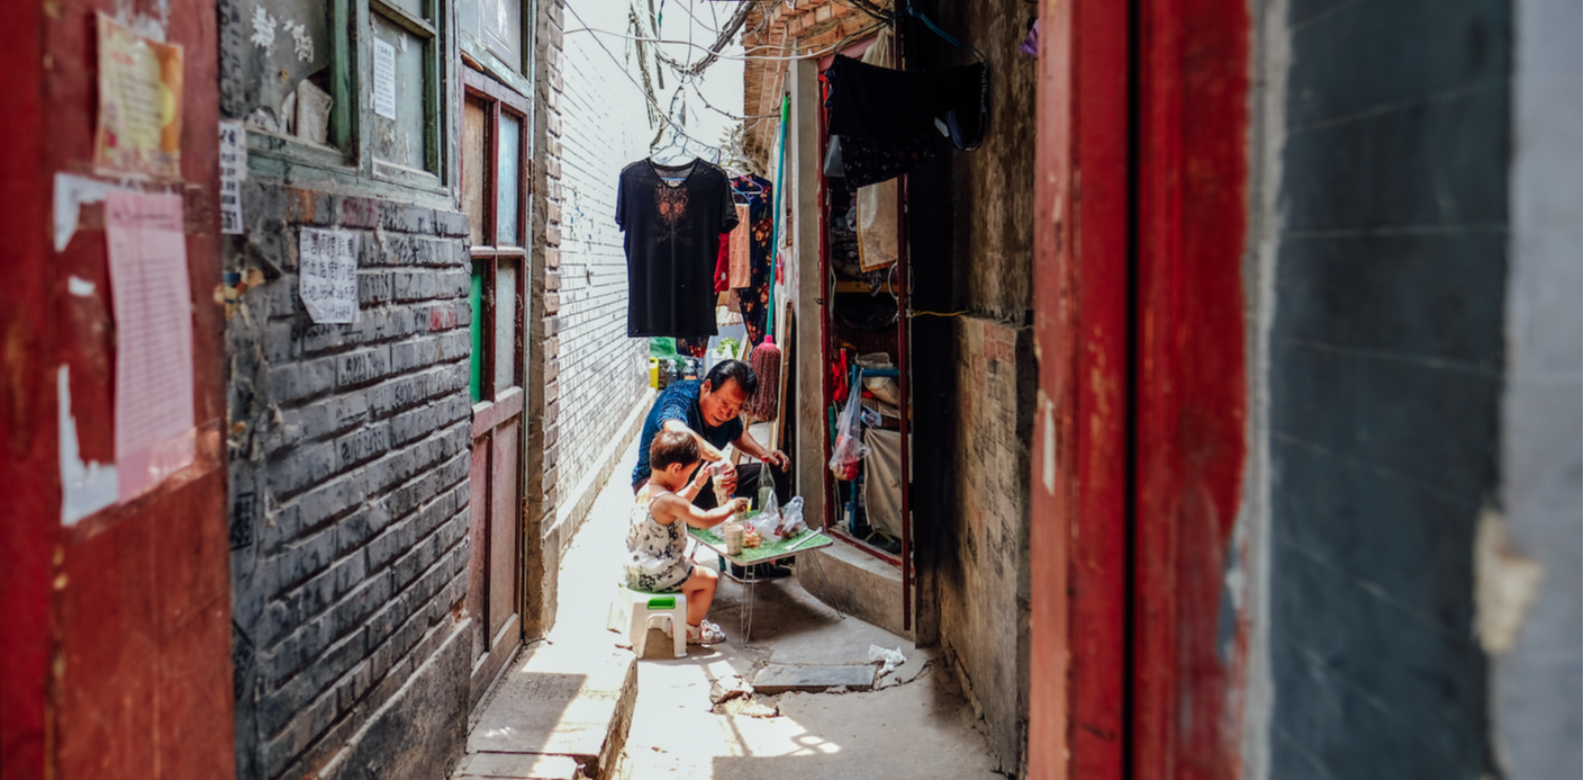 Enjoying Lunchtime with grandpa in a Hutong